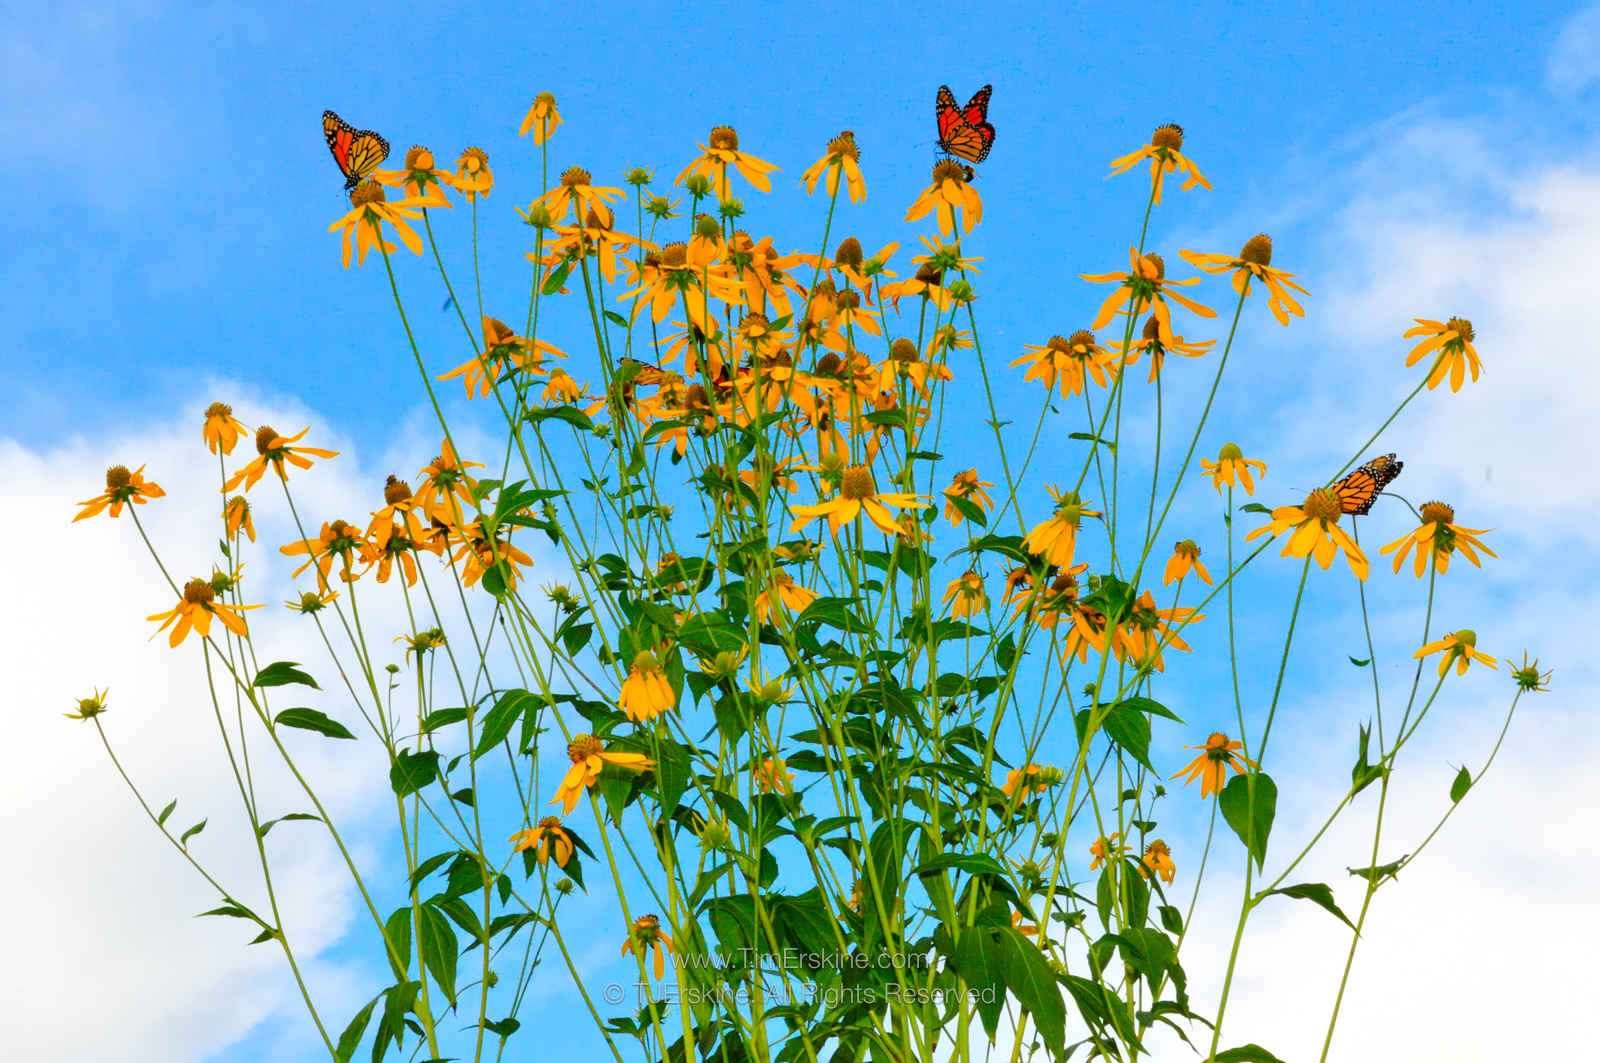 Monarchs on Green-headed Coneflowers